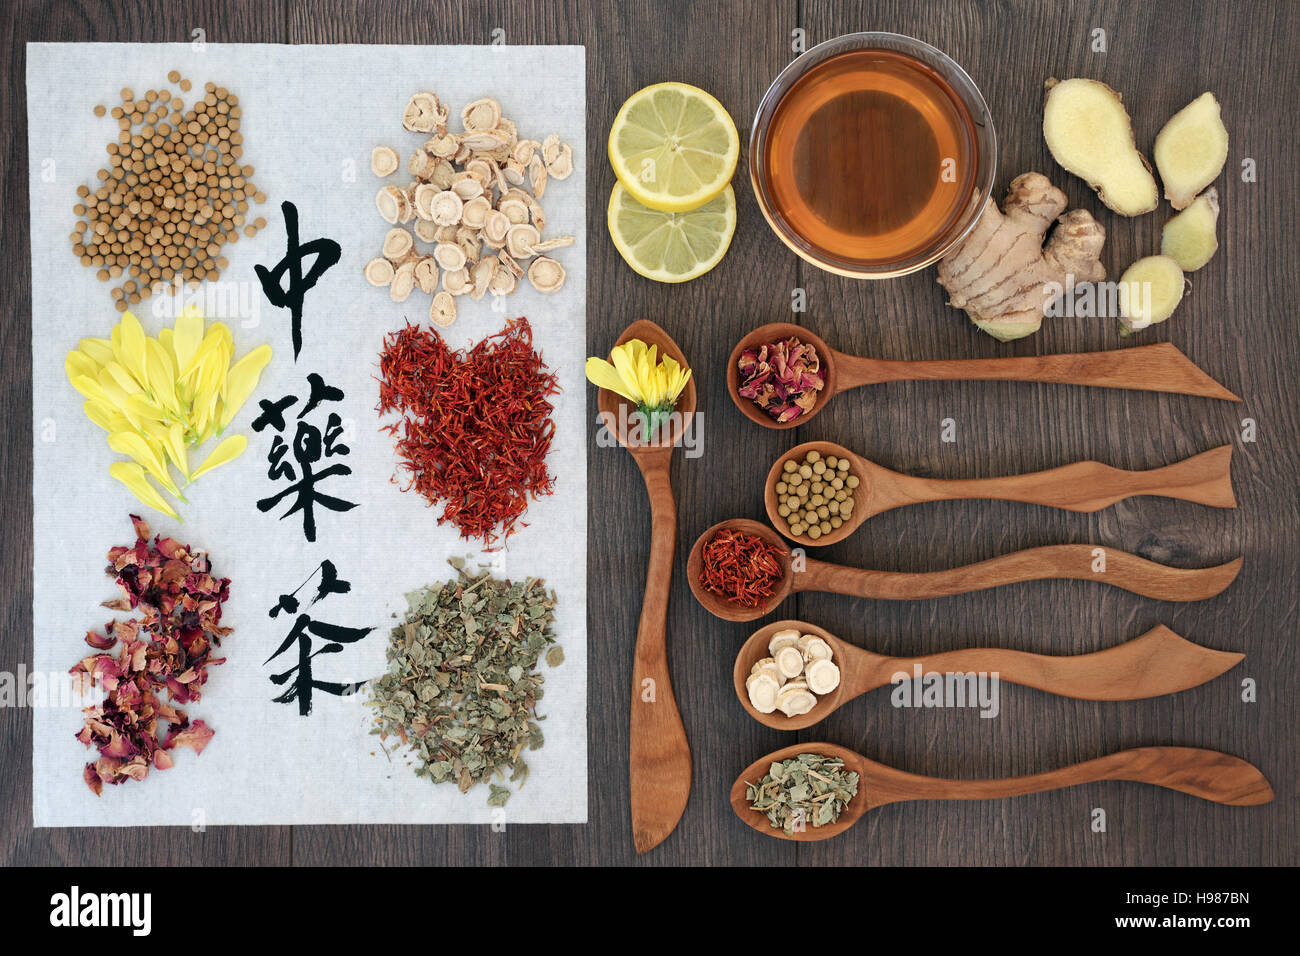 Chinese herbal insomnia tea - Chinese Herbal Tea Collection With Calligraphy On Rice Paper With Tea Cup And Herbs In Wooden